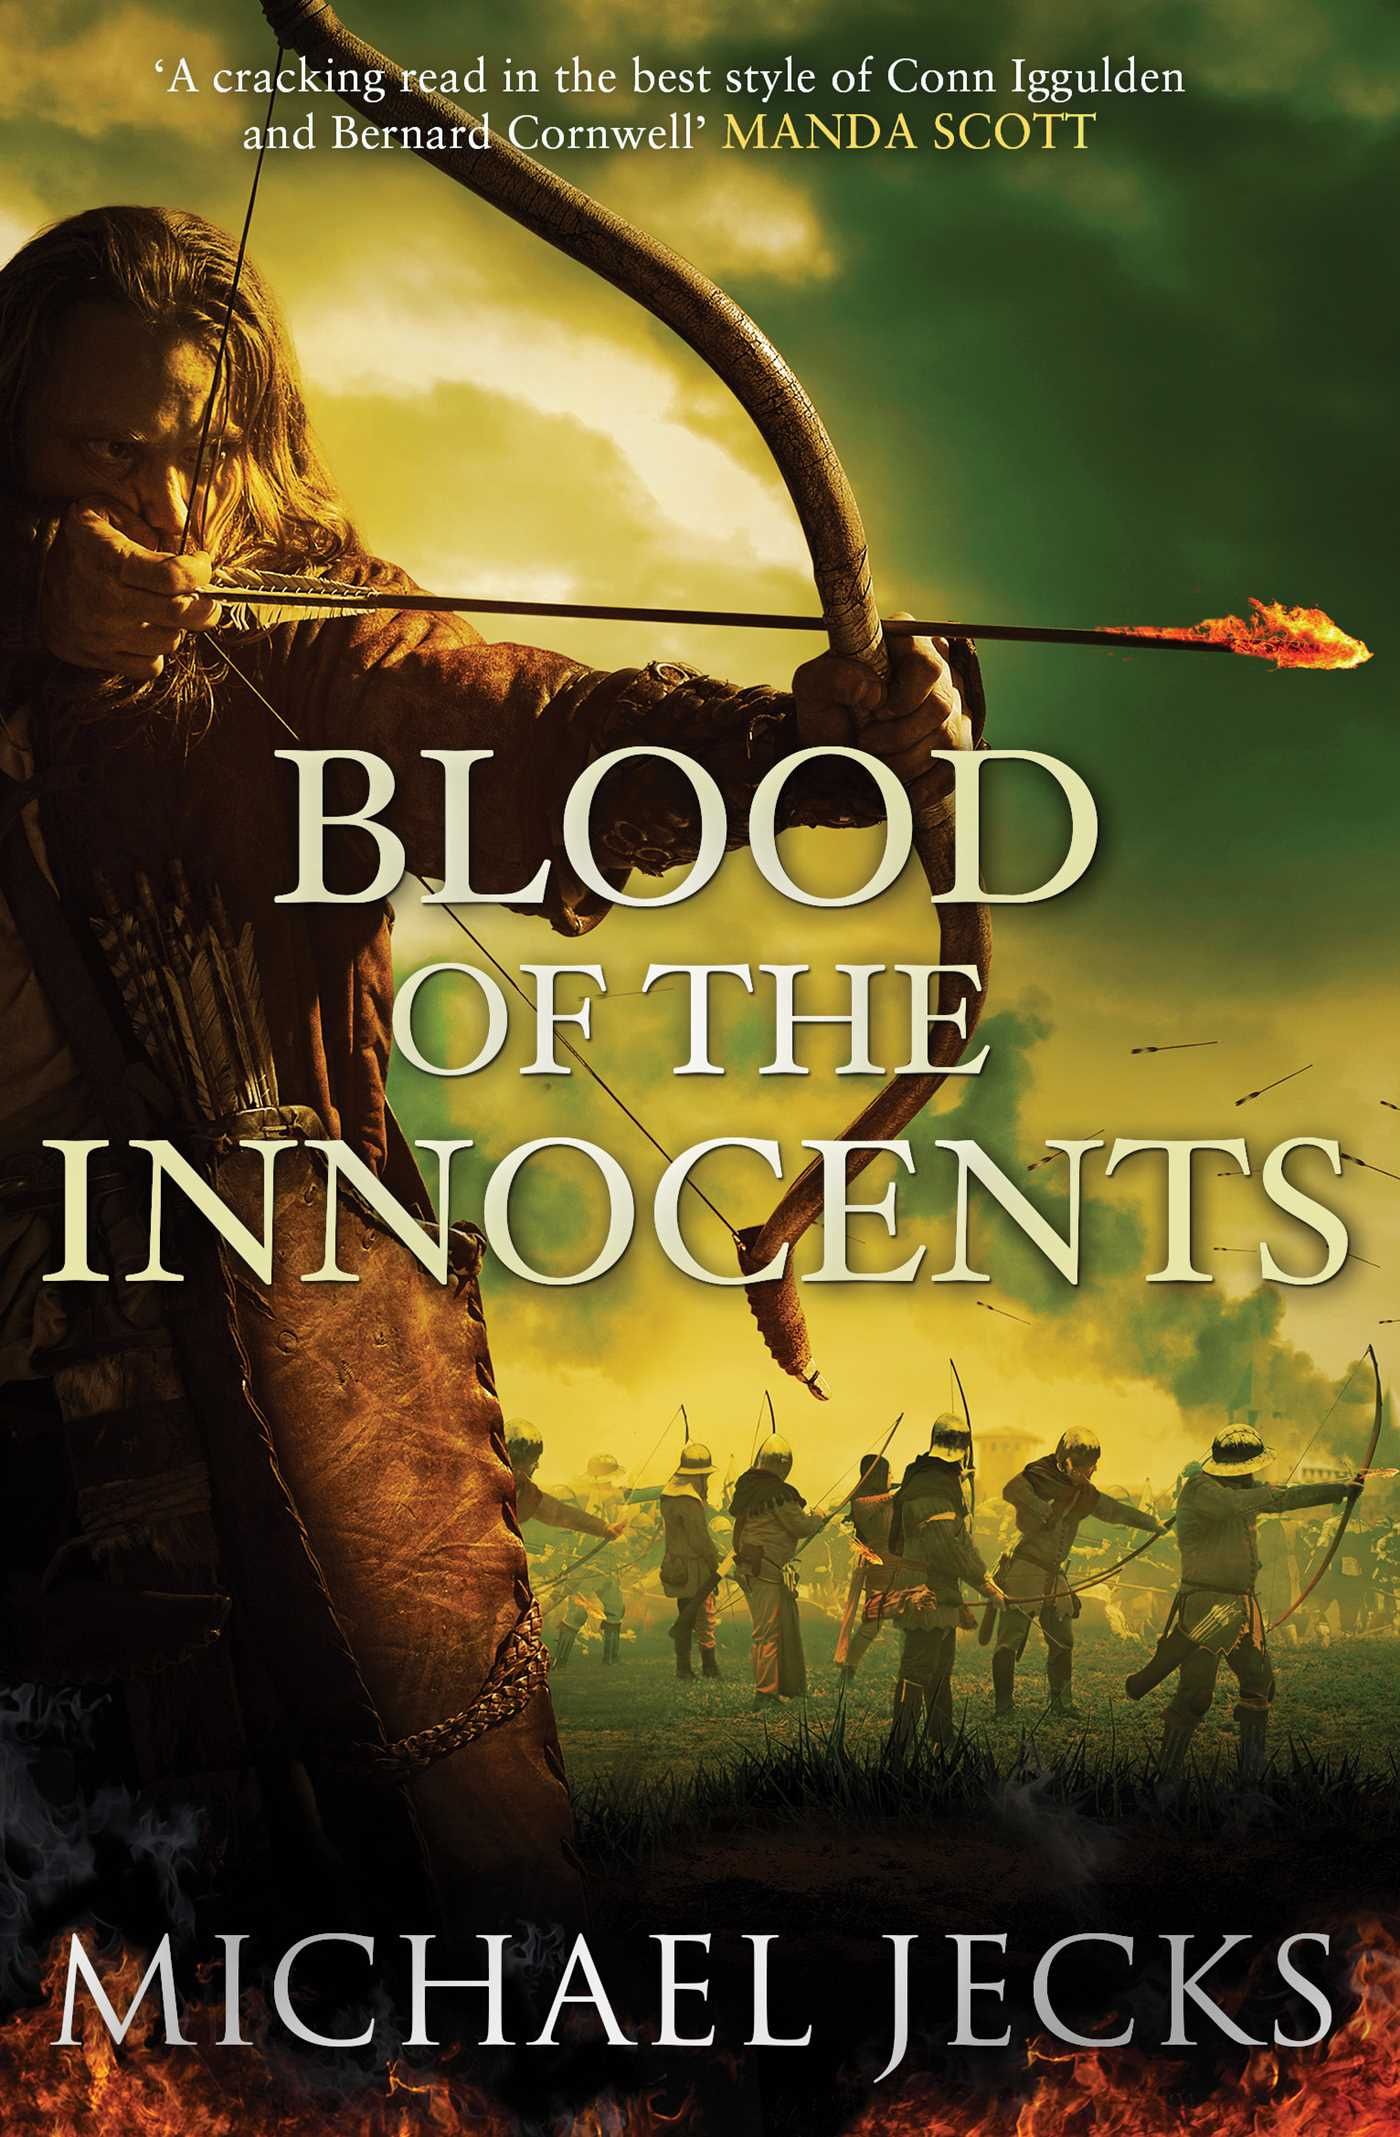 Blood of the innocents 9781471149986 hr